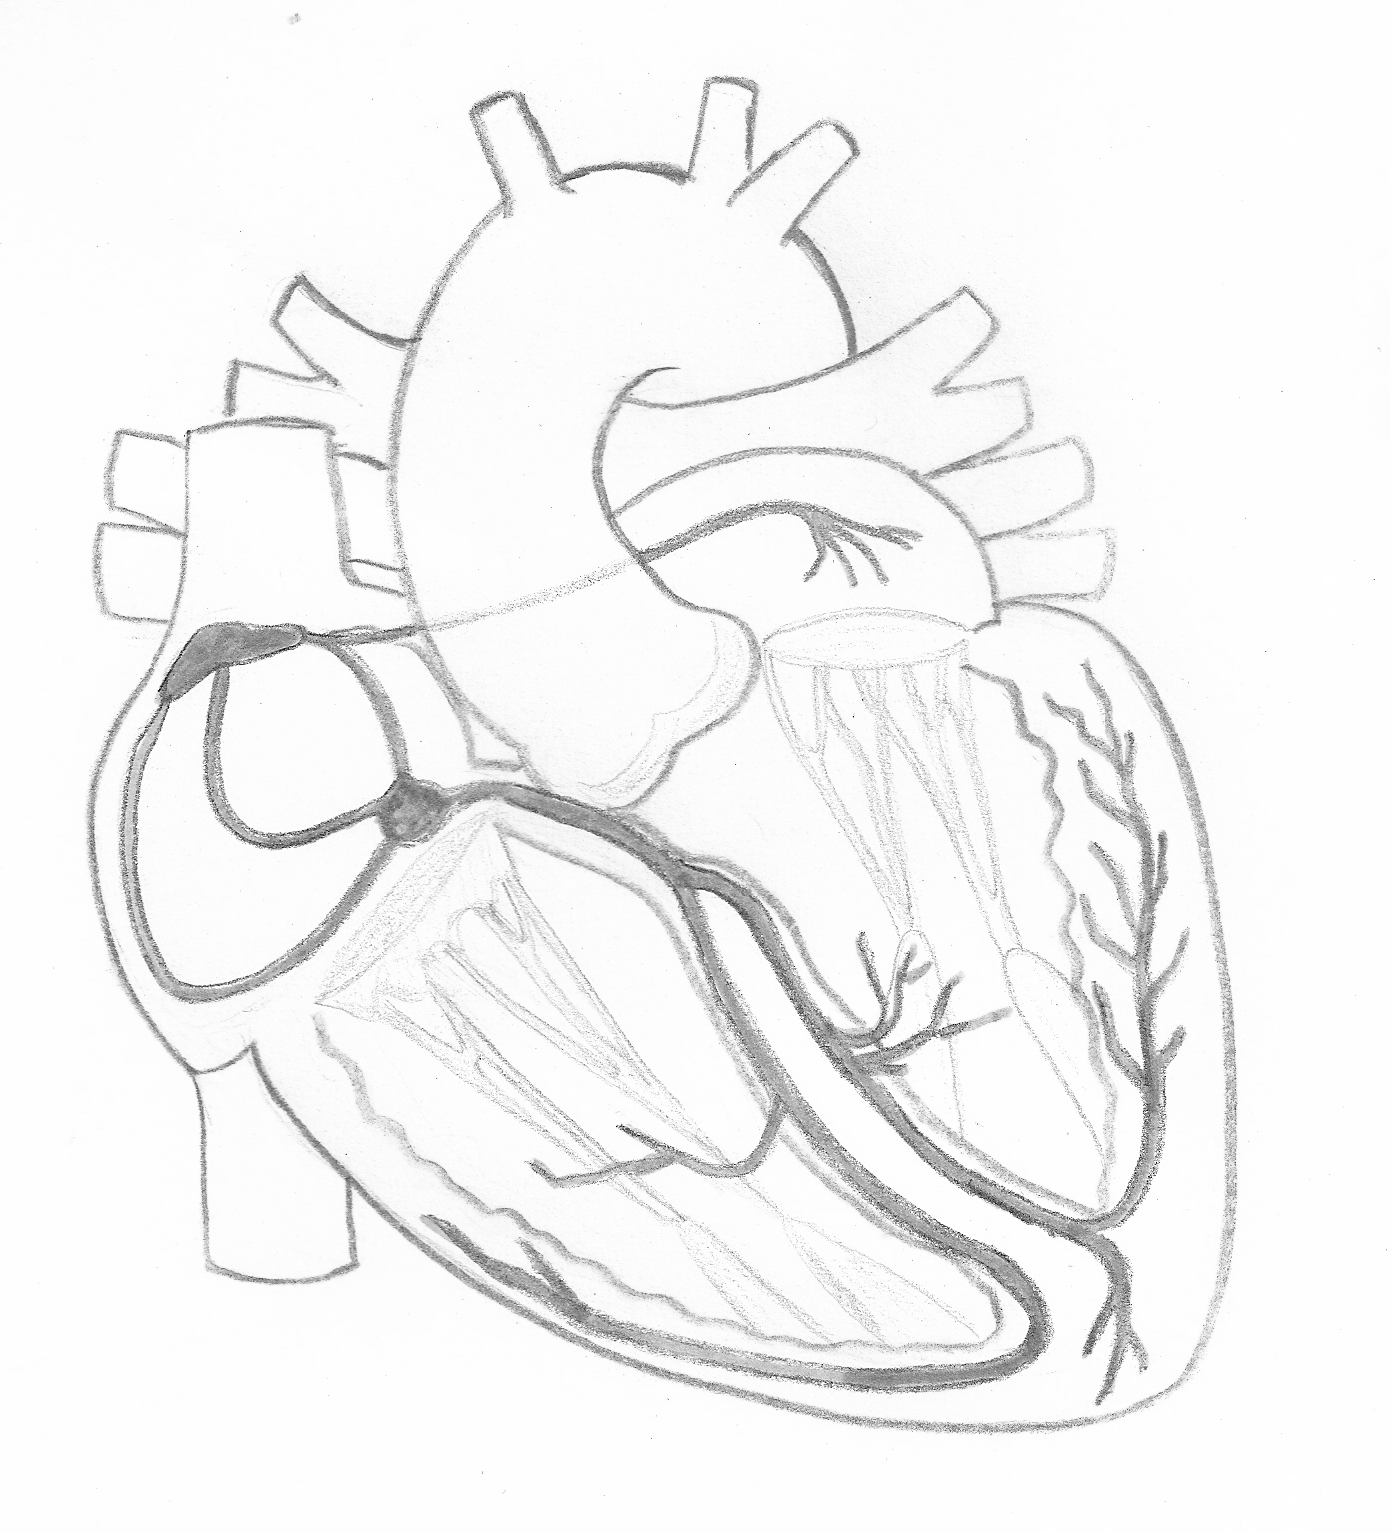 Cardiac Conduction System In Greyscale